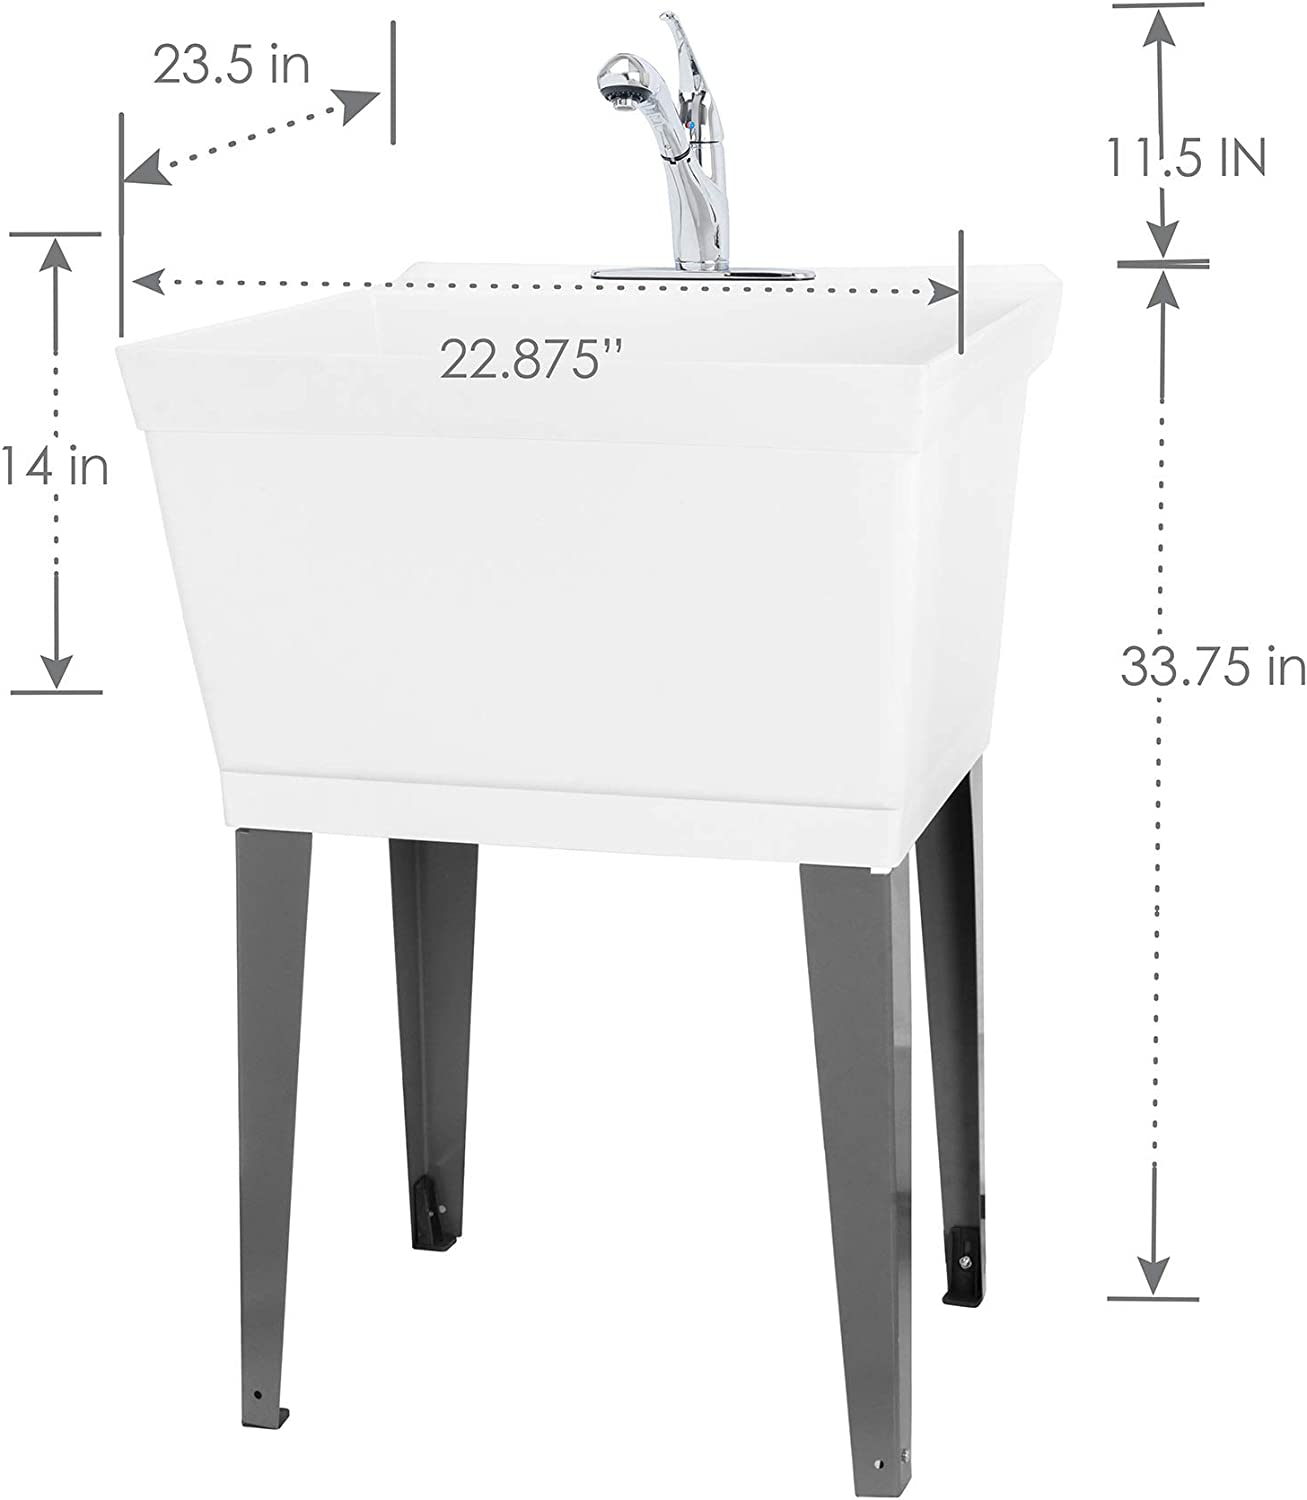 Workshop Chrome Faucet Garage Heavy Duty Free Standing Slop Sinks for Basement Utility Sink Laundry Tub with Pull Out Spout by Vetta